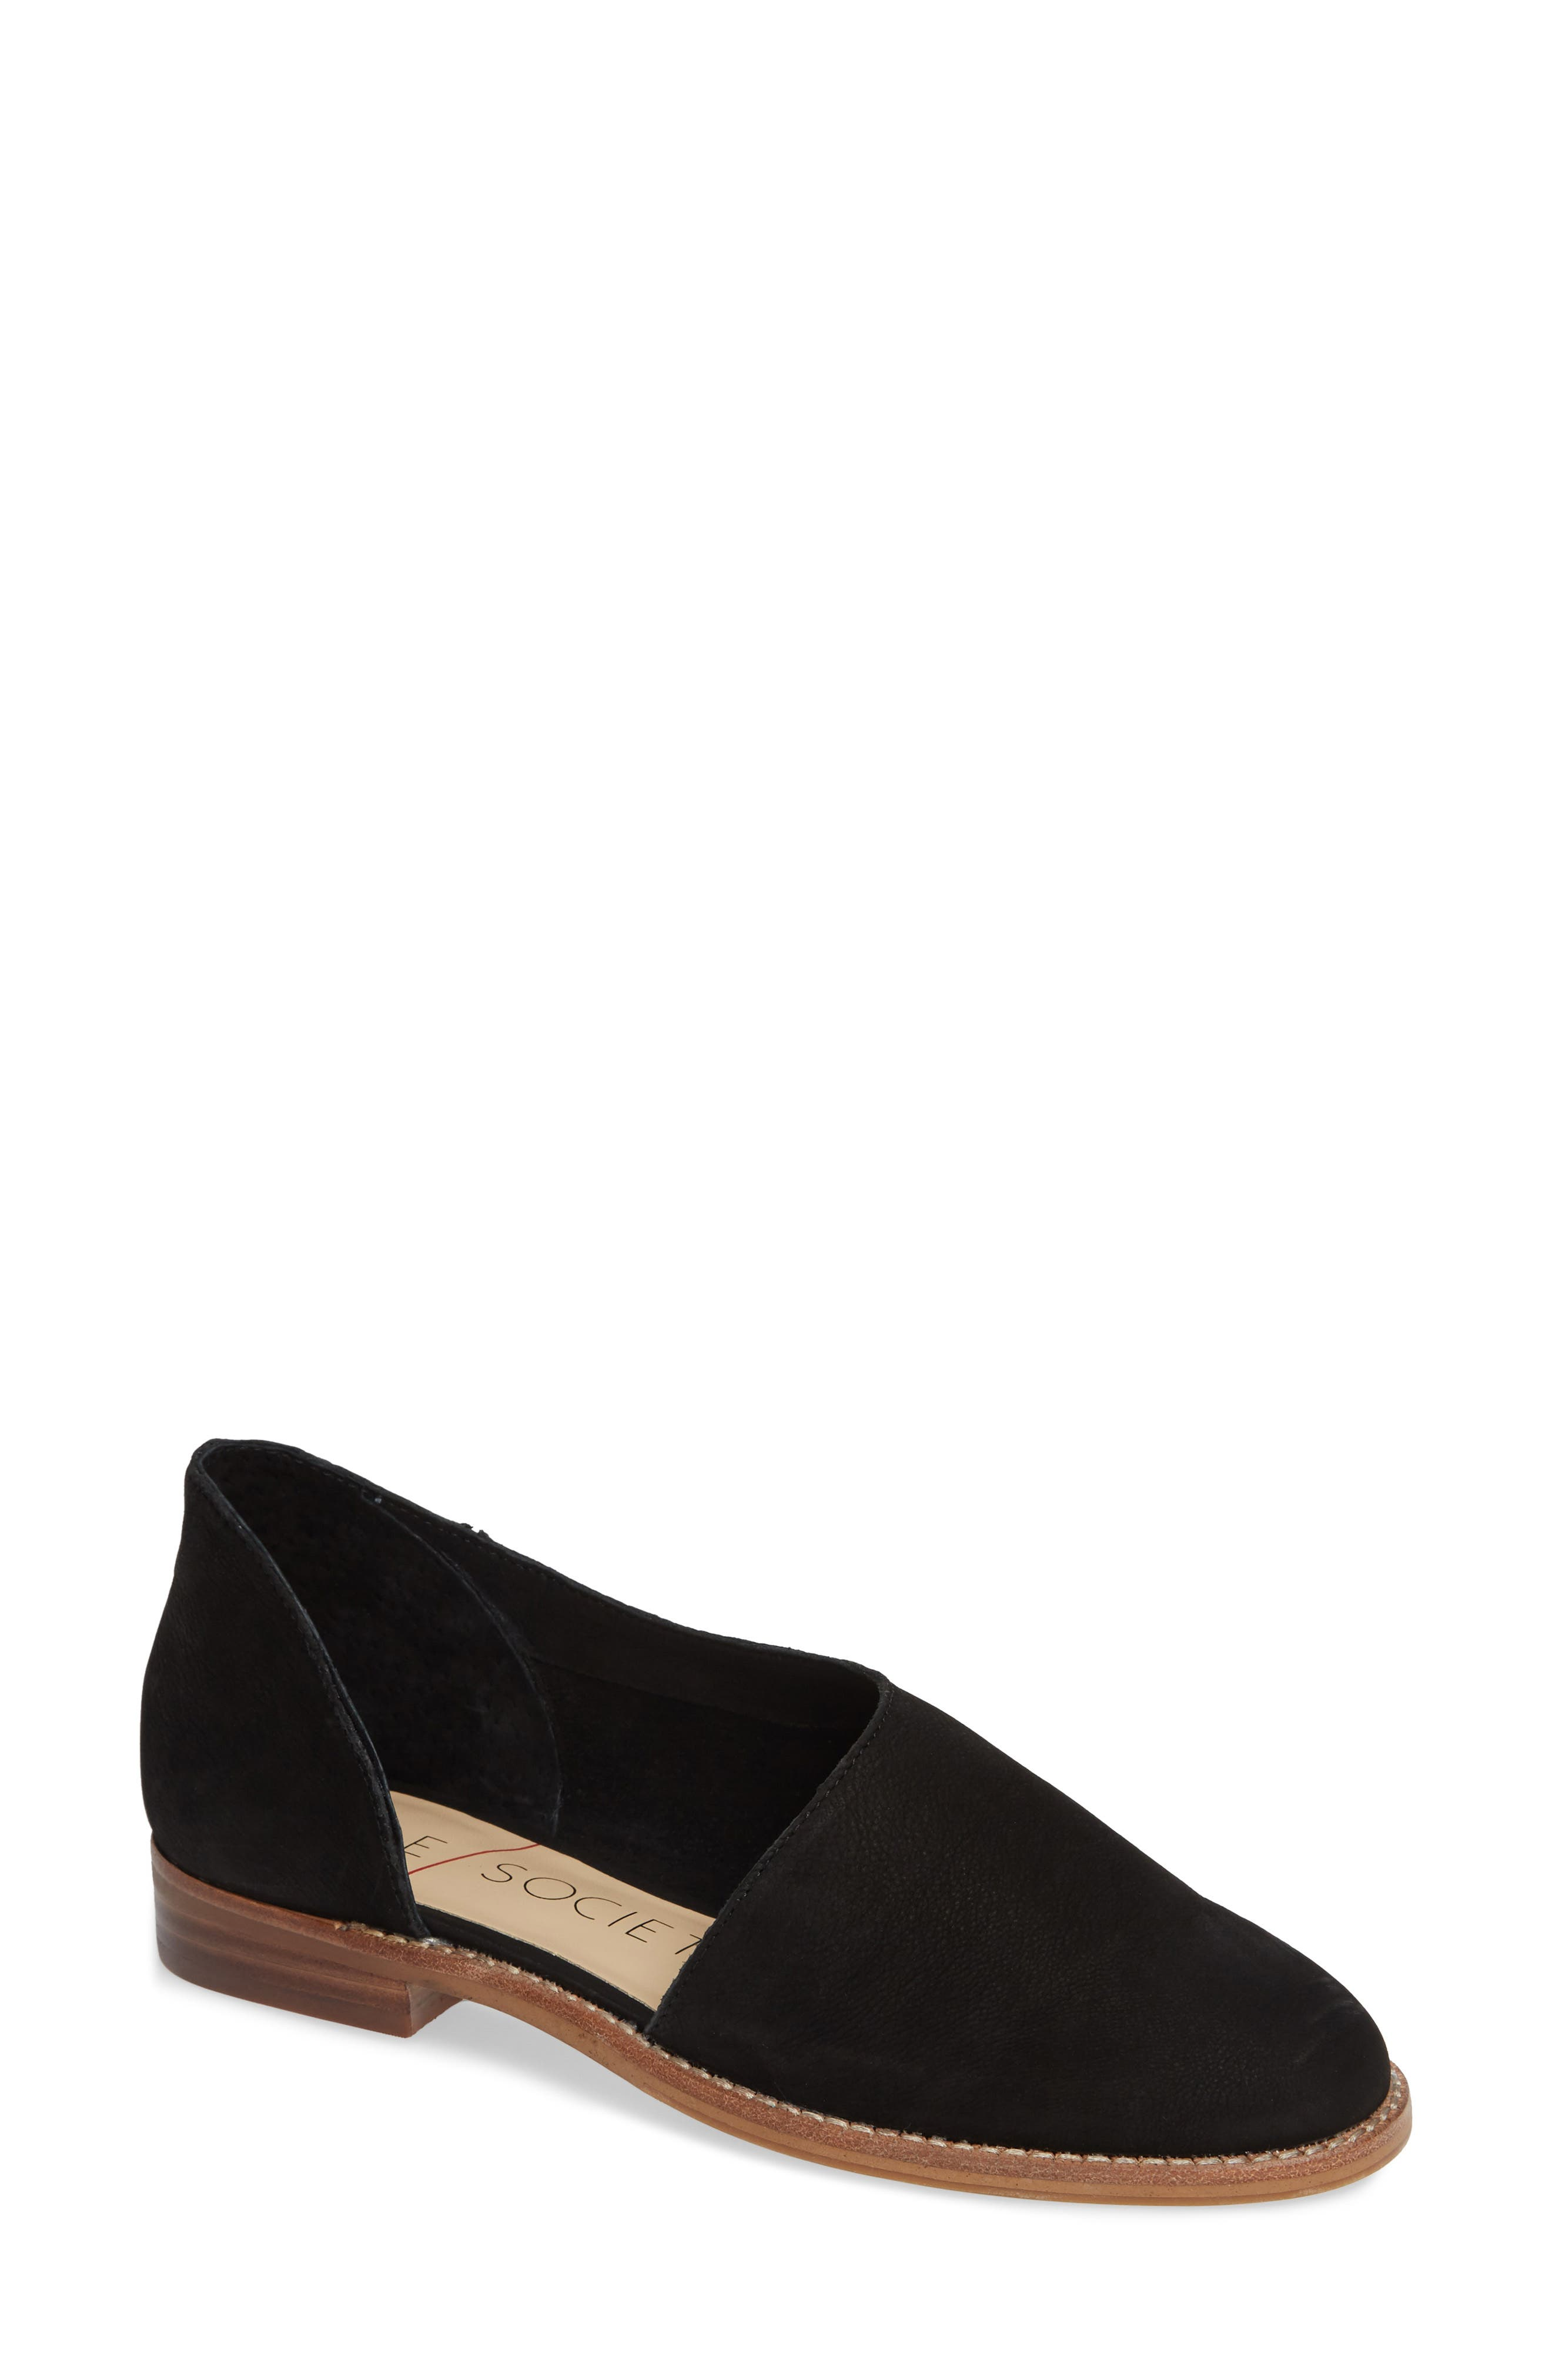 Betianne Flat,                             Main thumbnail 1, color,                             BLACK NUBUCK